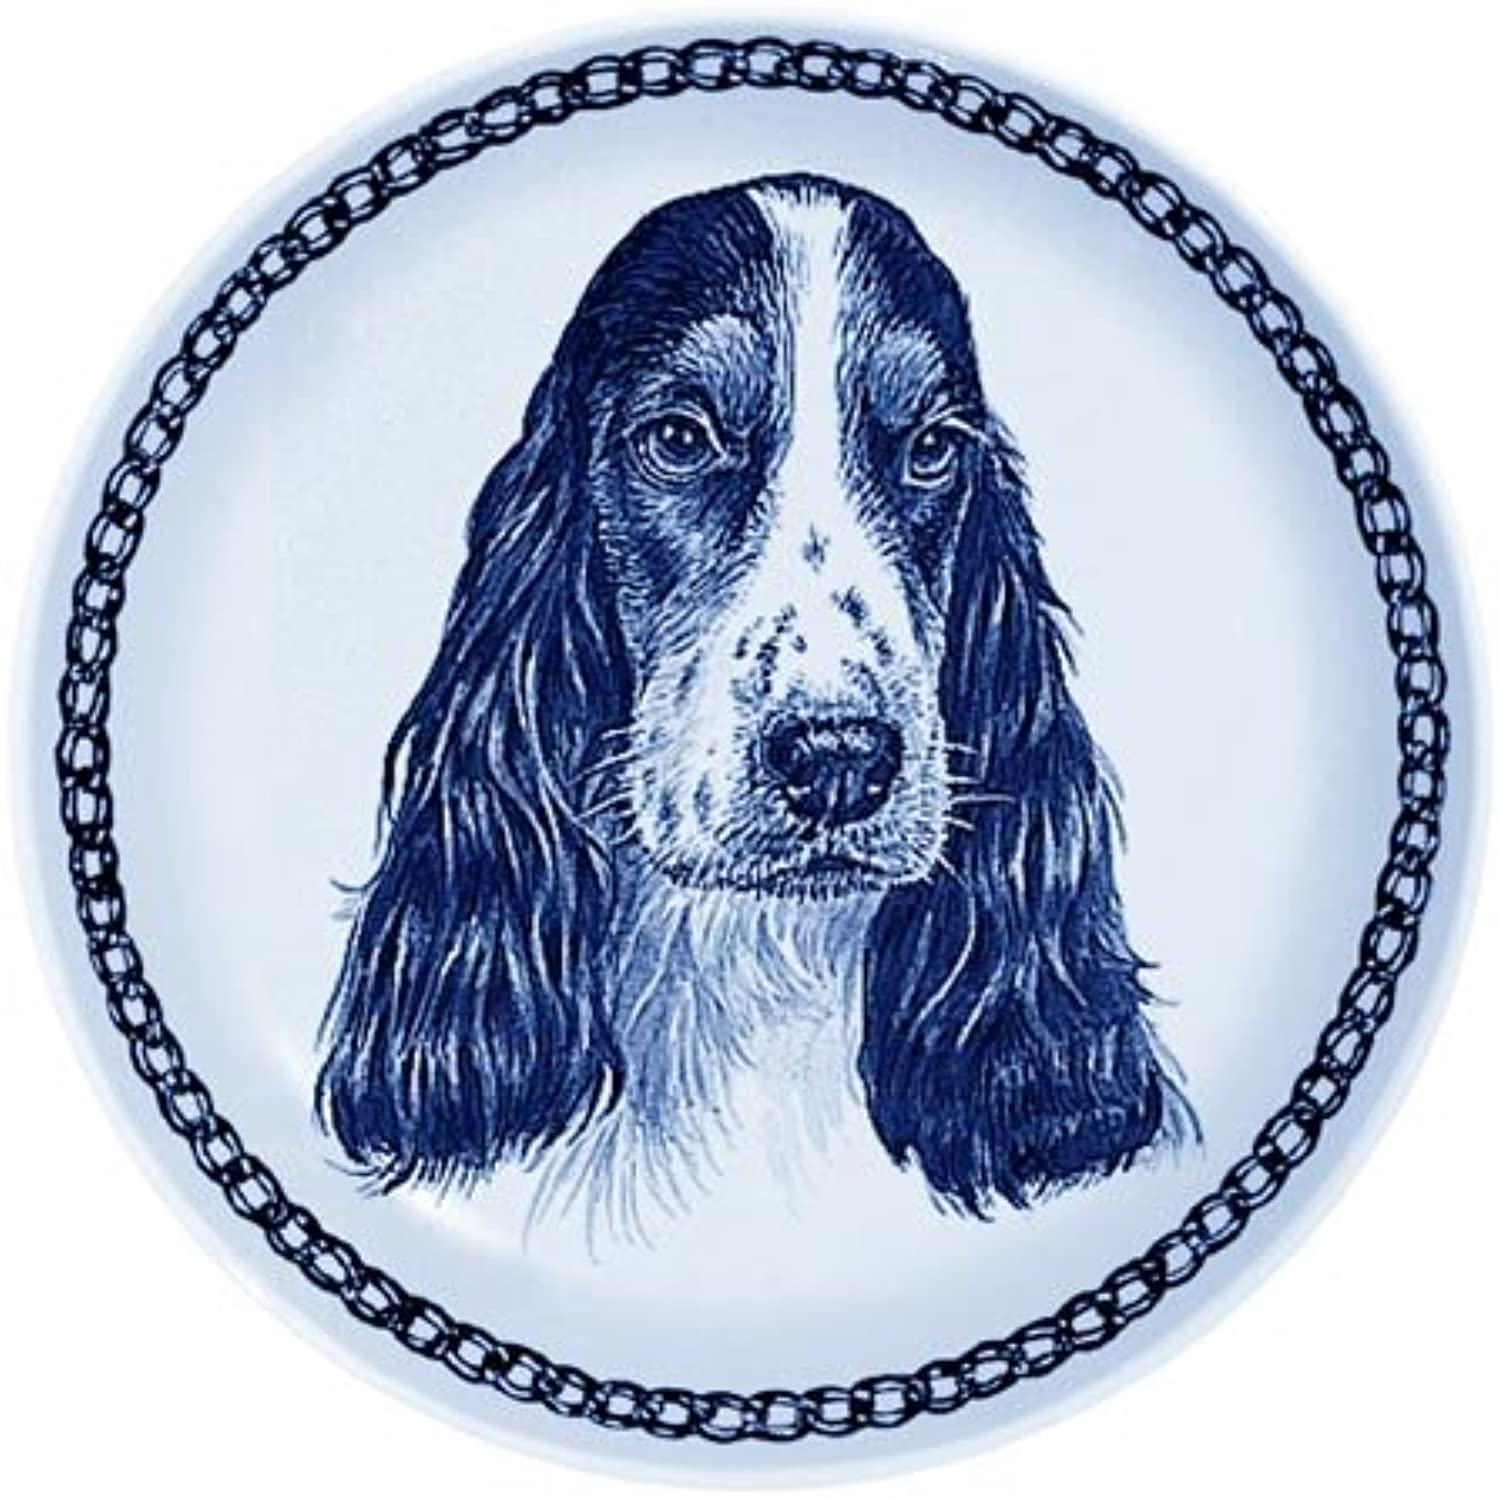 English Cocker Spaniel Lekven Design Dog Plate 19.5 cm  7.61 inches Made in Denmark NEW with certificate of origin PLATE  75650